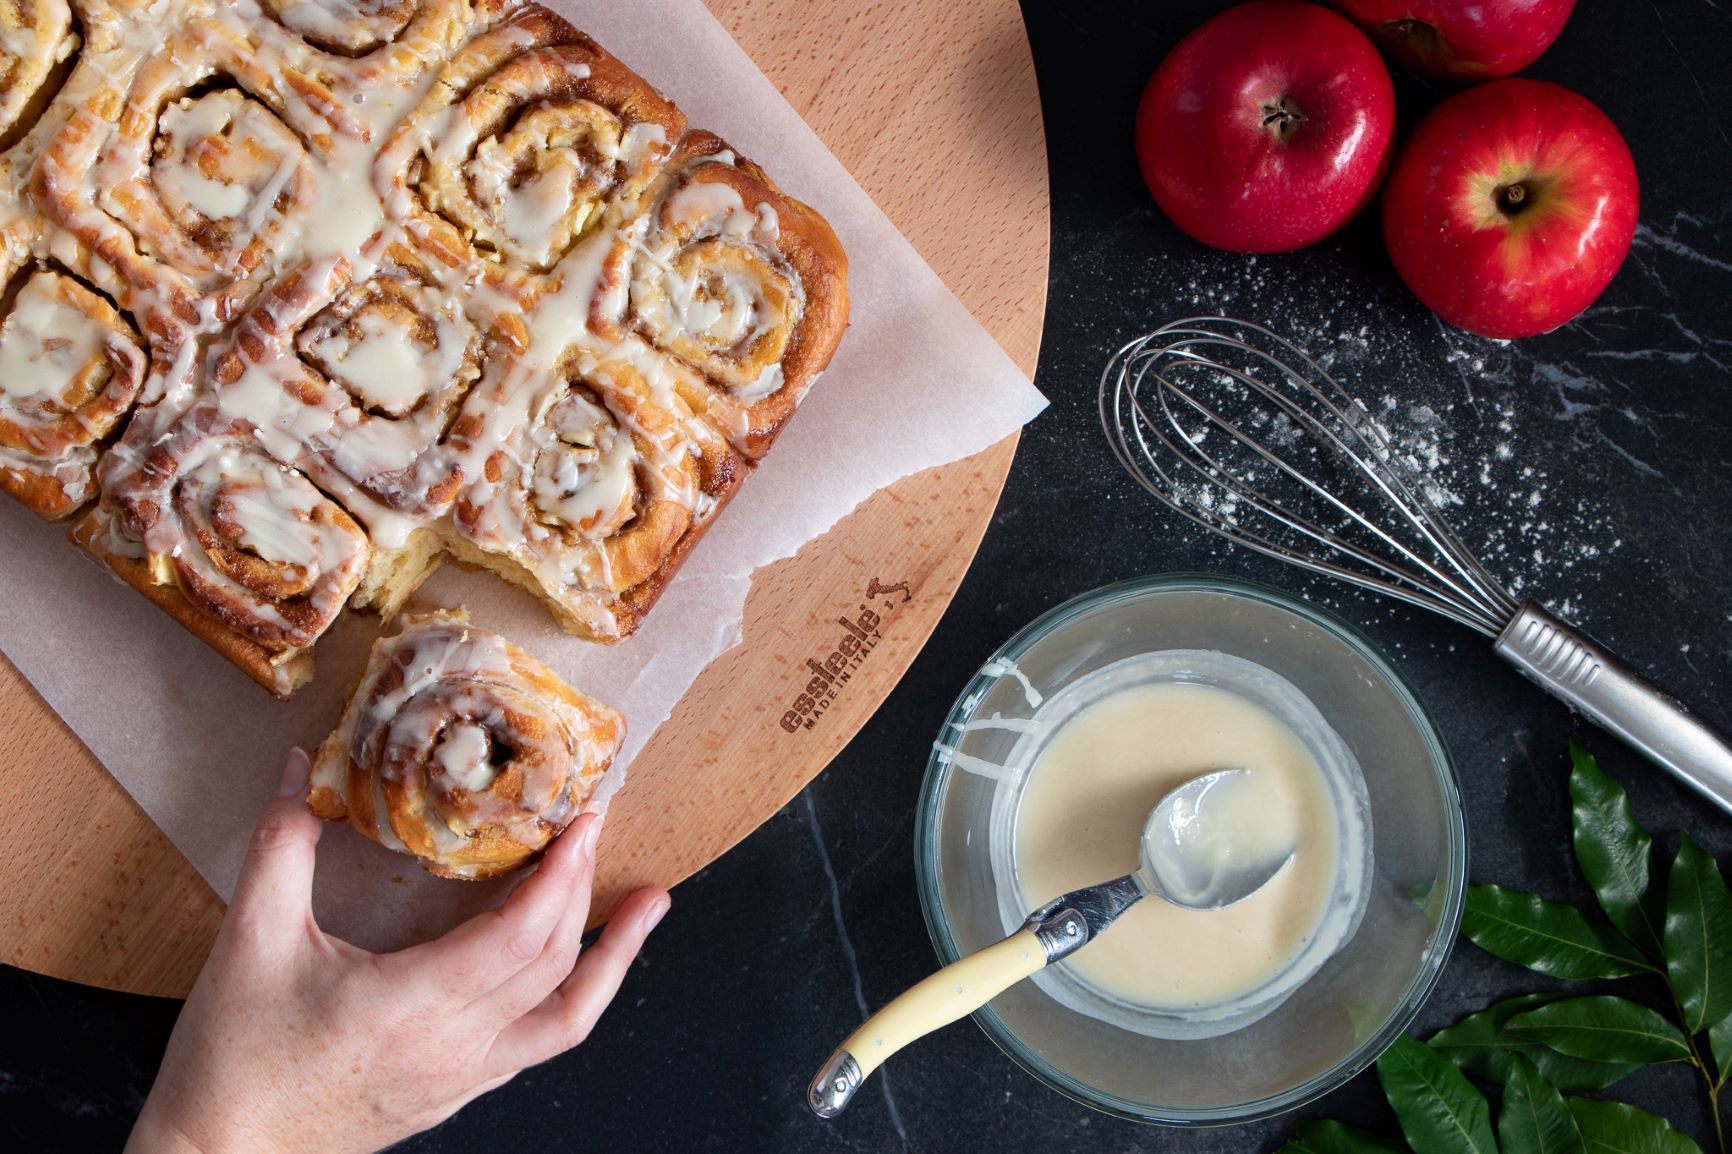 Apple Maple Syrup & Cinnamon Scrolls